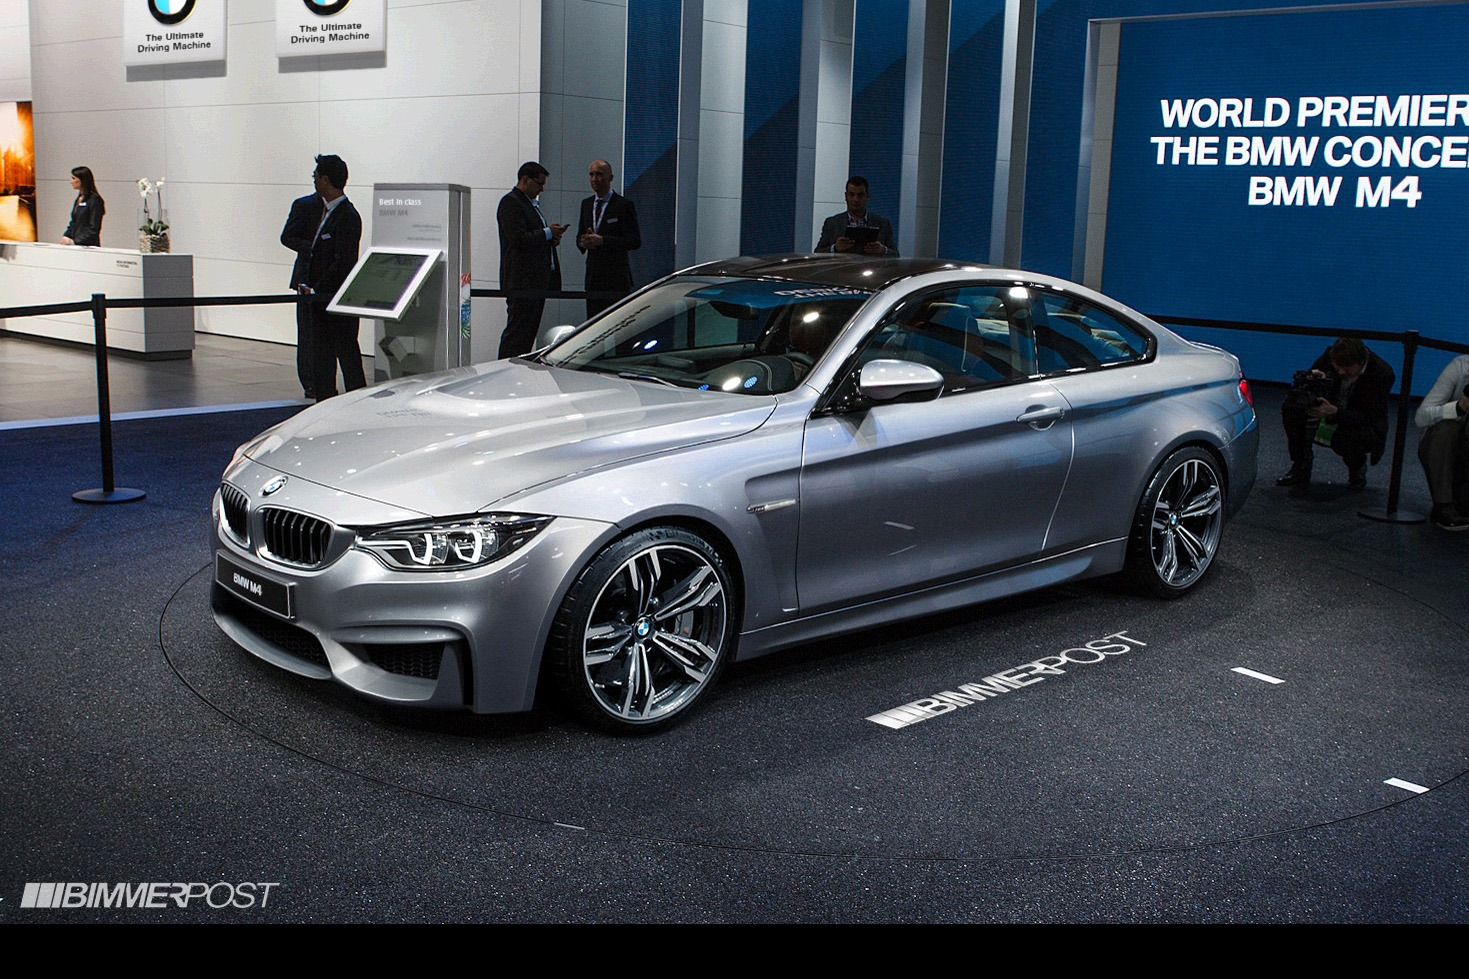 2014 BMW M3 & M4 reportedly gets 310kW